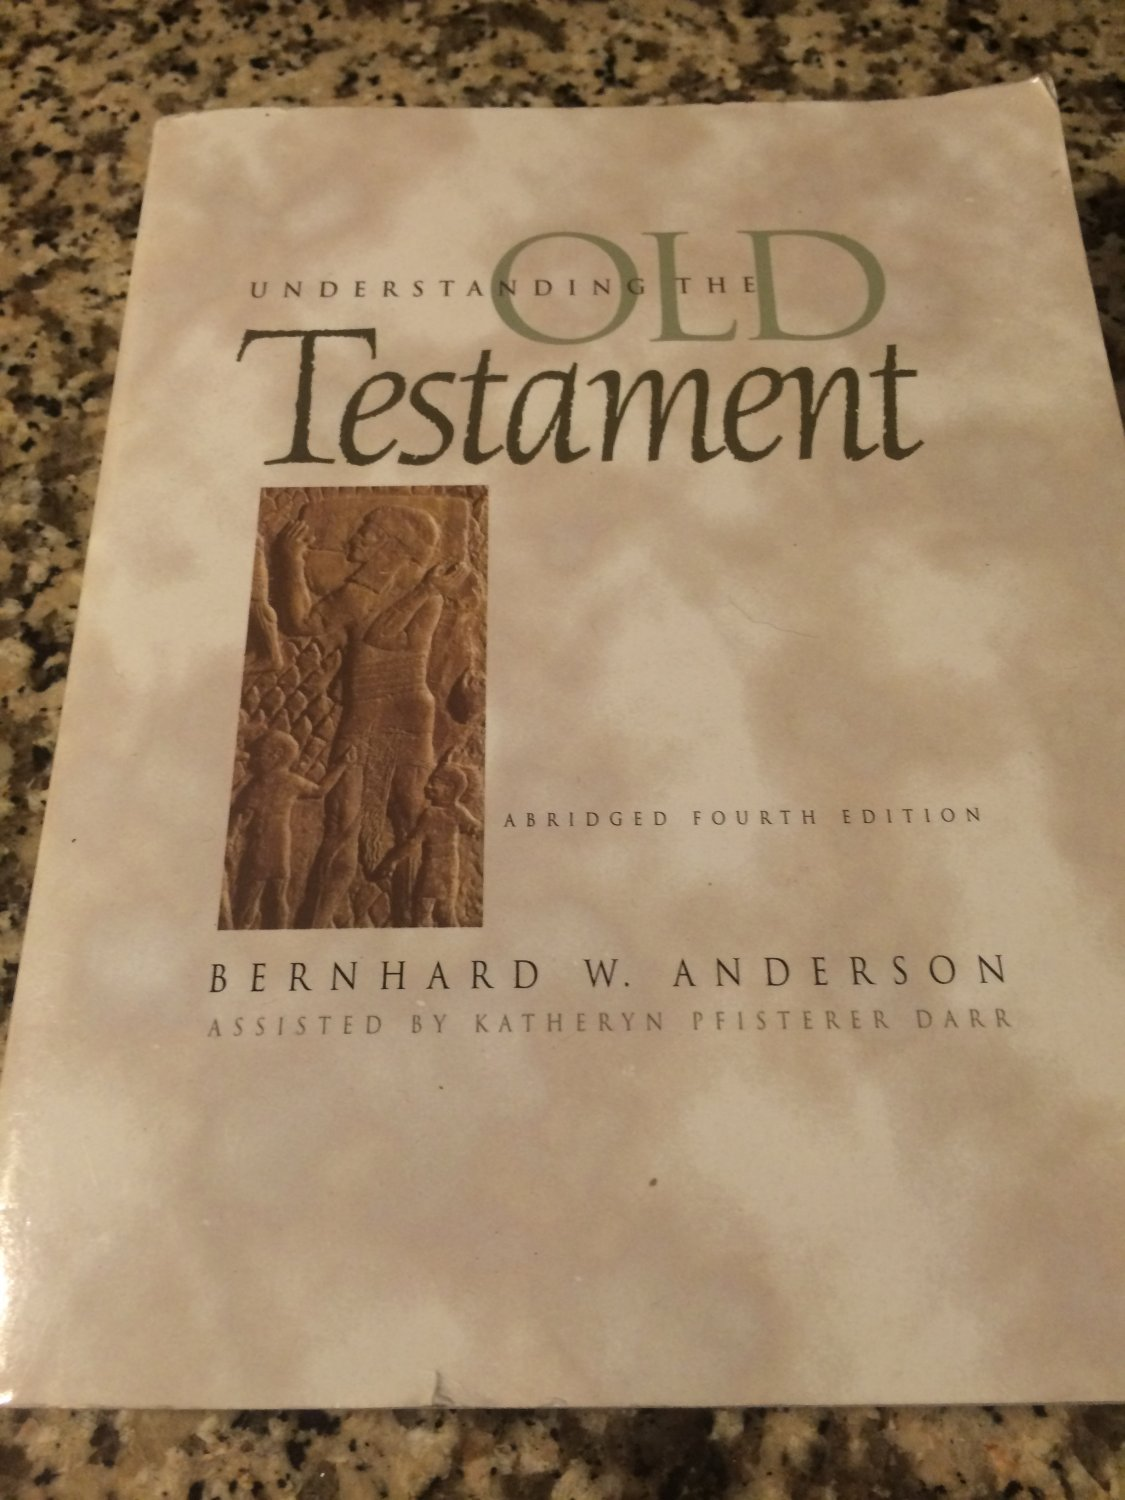 Understanding the Old Testament by Bernhard W. Anderson & Katheryn Pfisterer Darr (1997, Paperback)